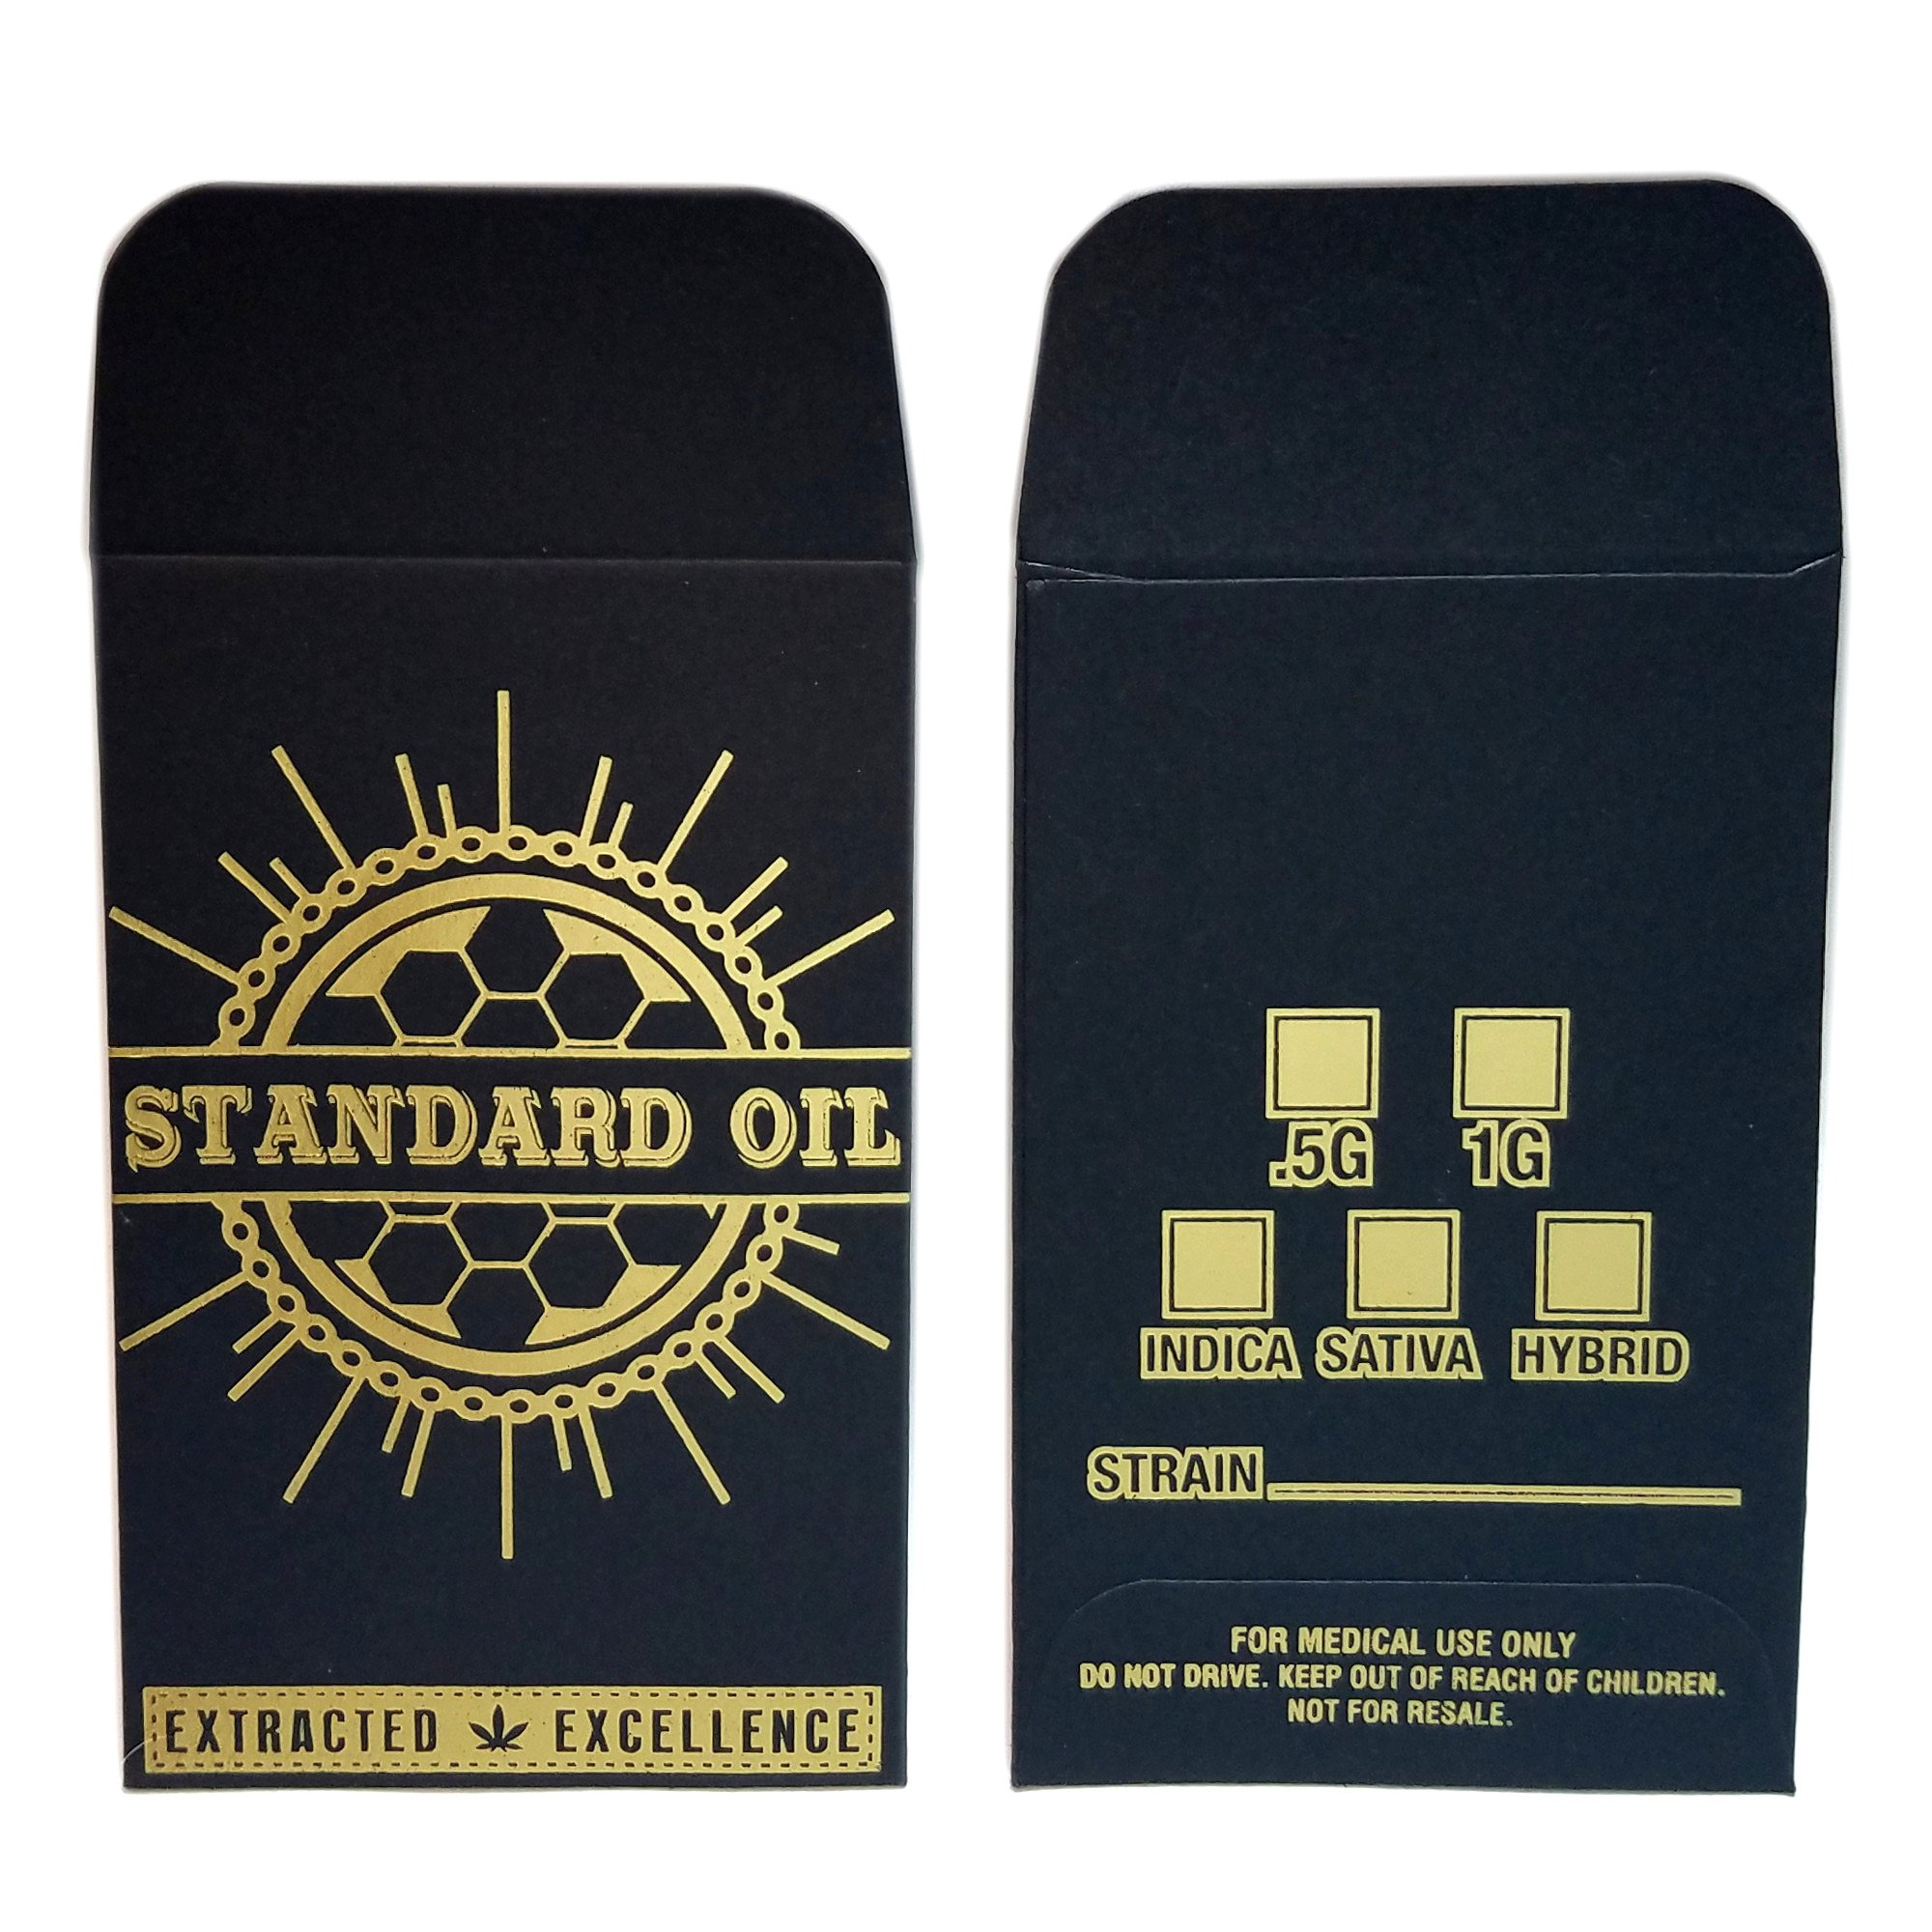 100 - Original Black Gold Standard Oil Wax Extract Coin Foil Envelopes #001